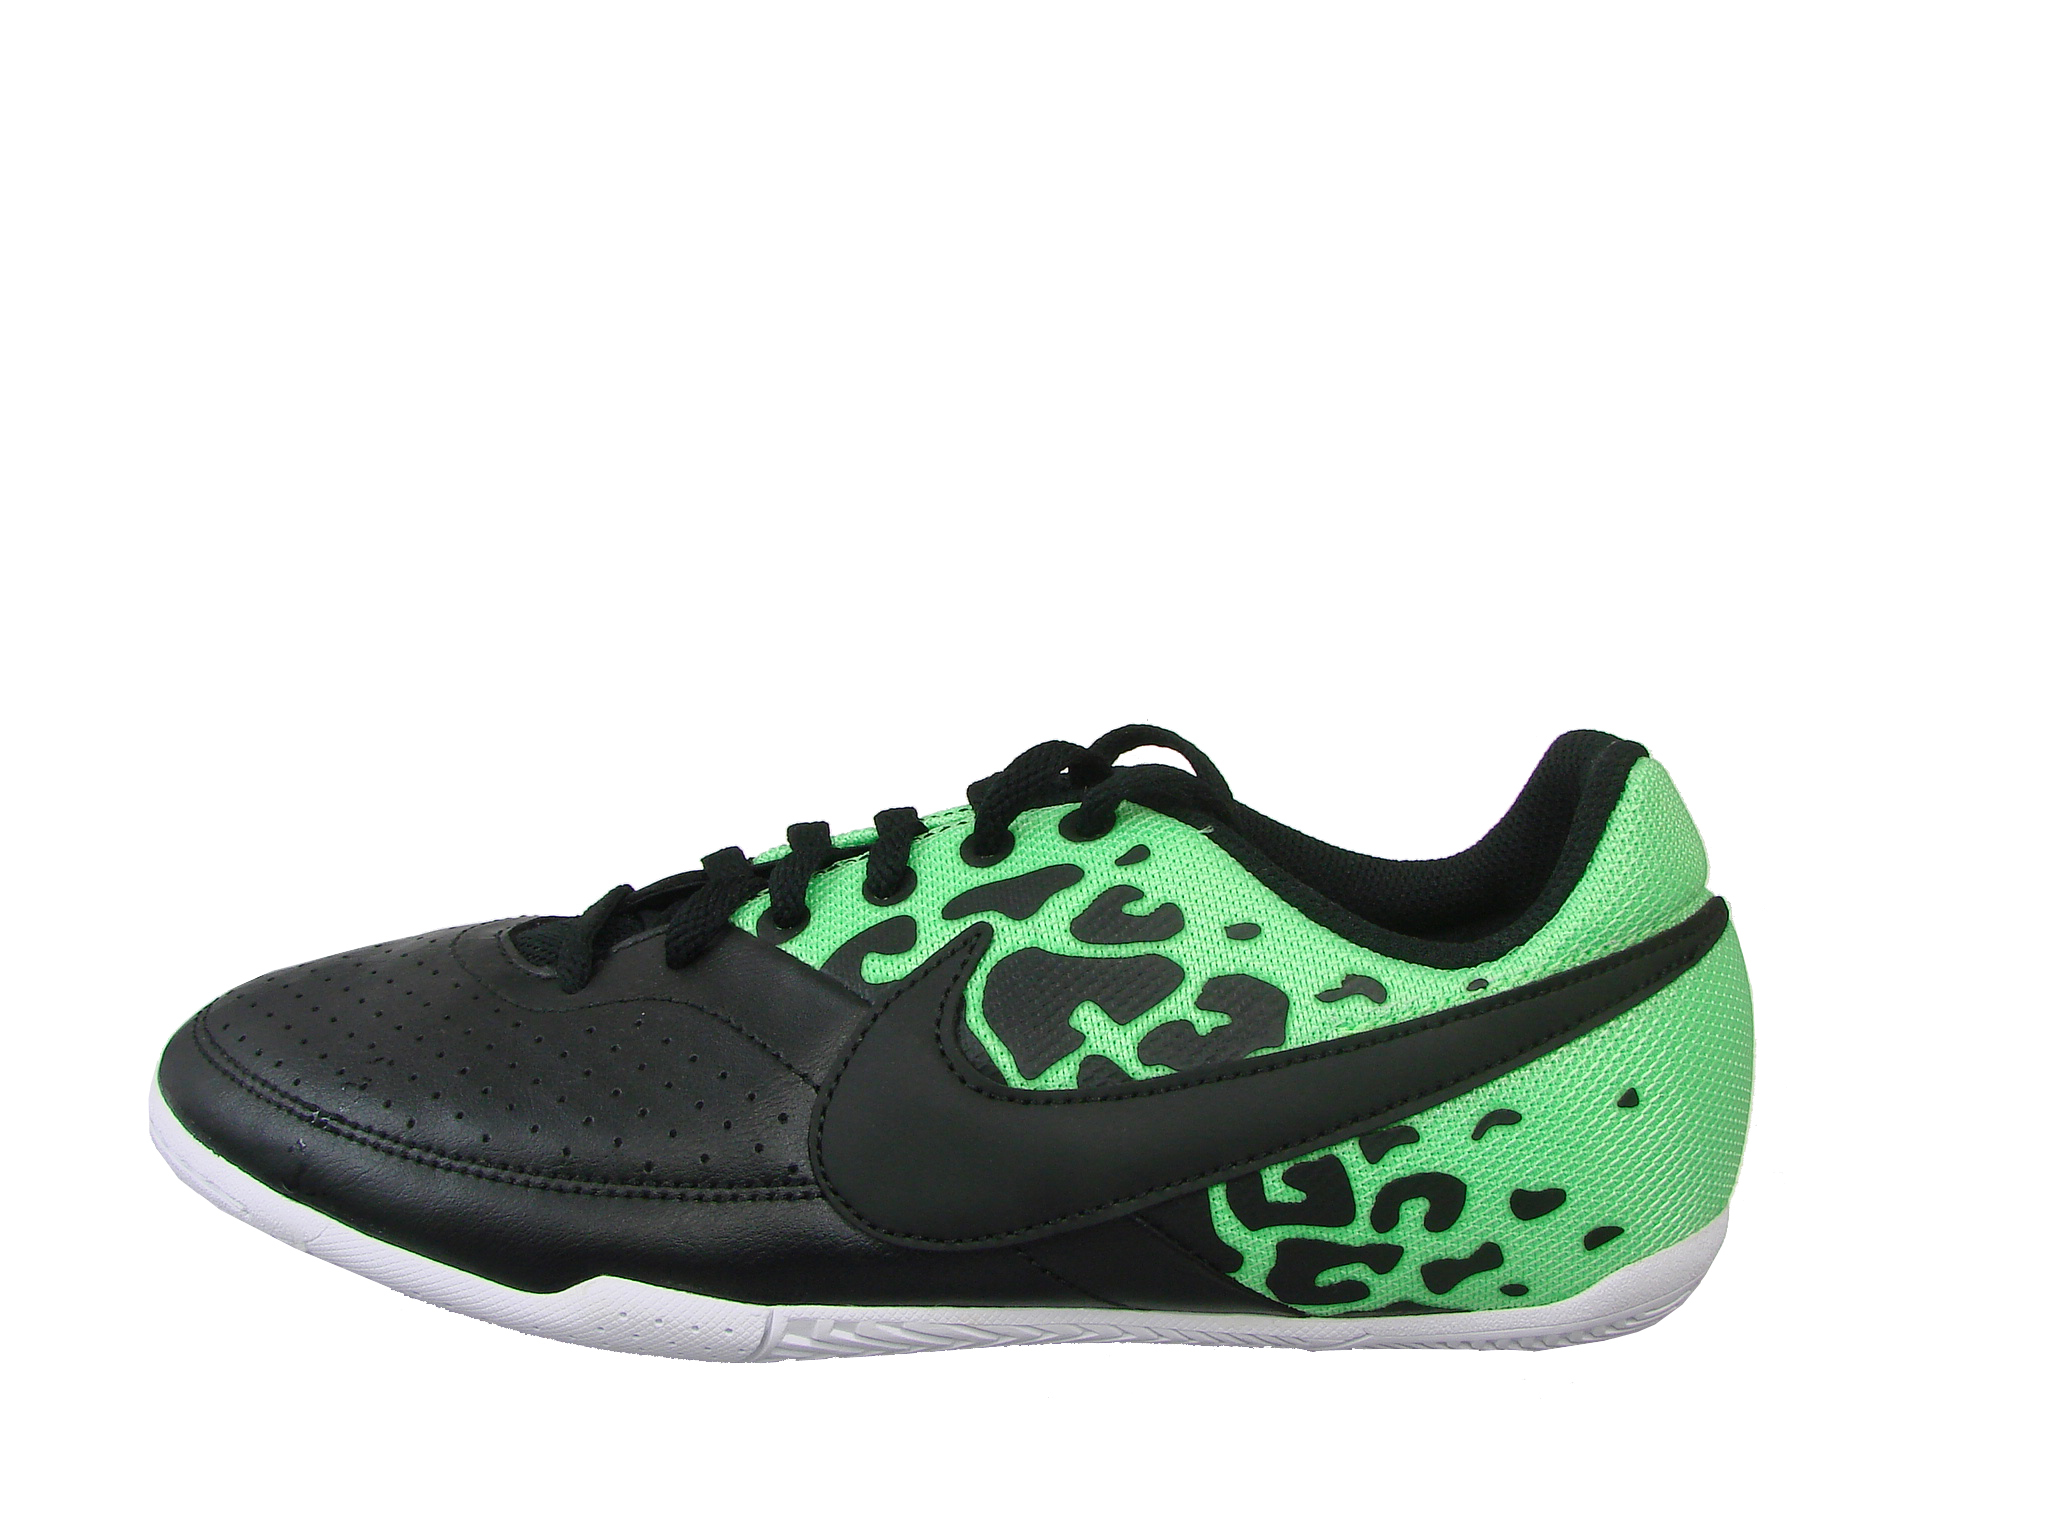 3a9a073e873 ... indoor soccer shoes  nike unisex kids  nike unisex kids  halowki nike  jr nike elastico ii 579797 003 r. 38